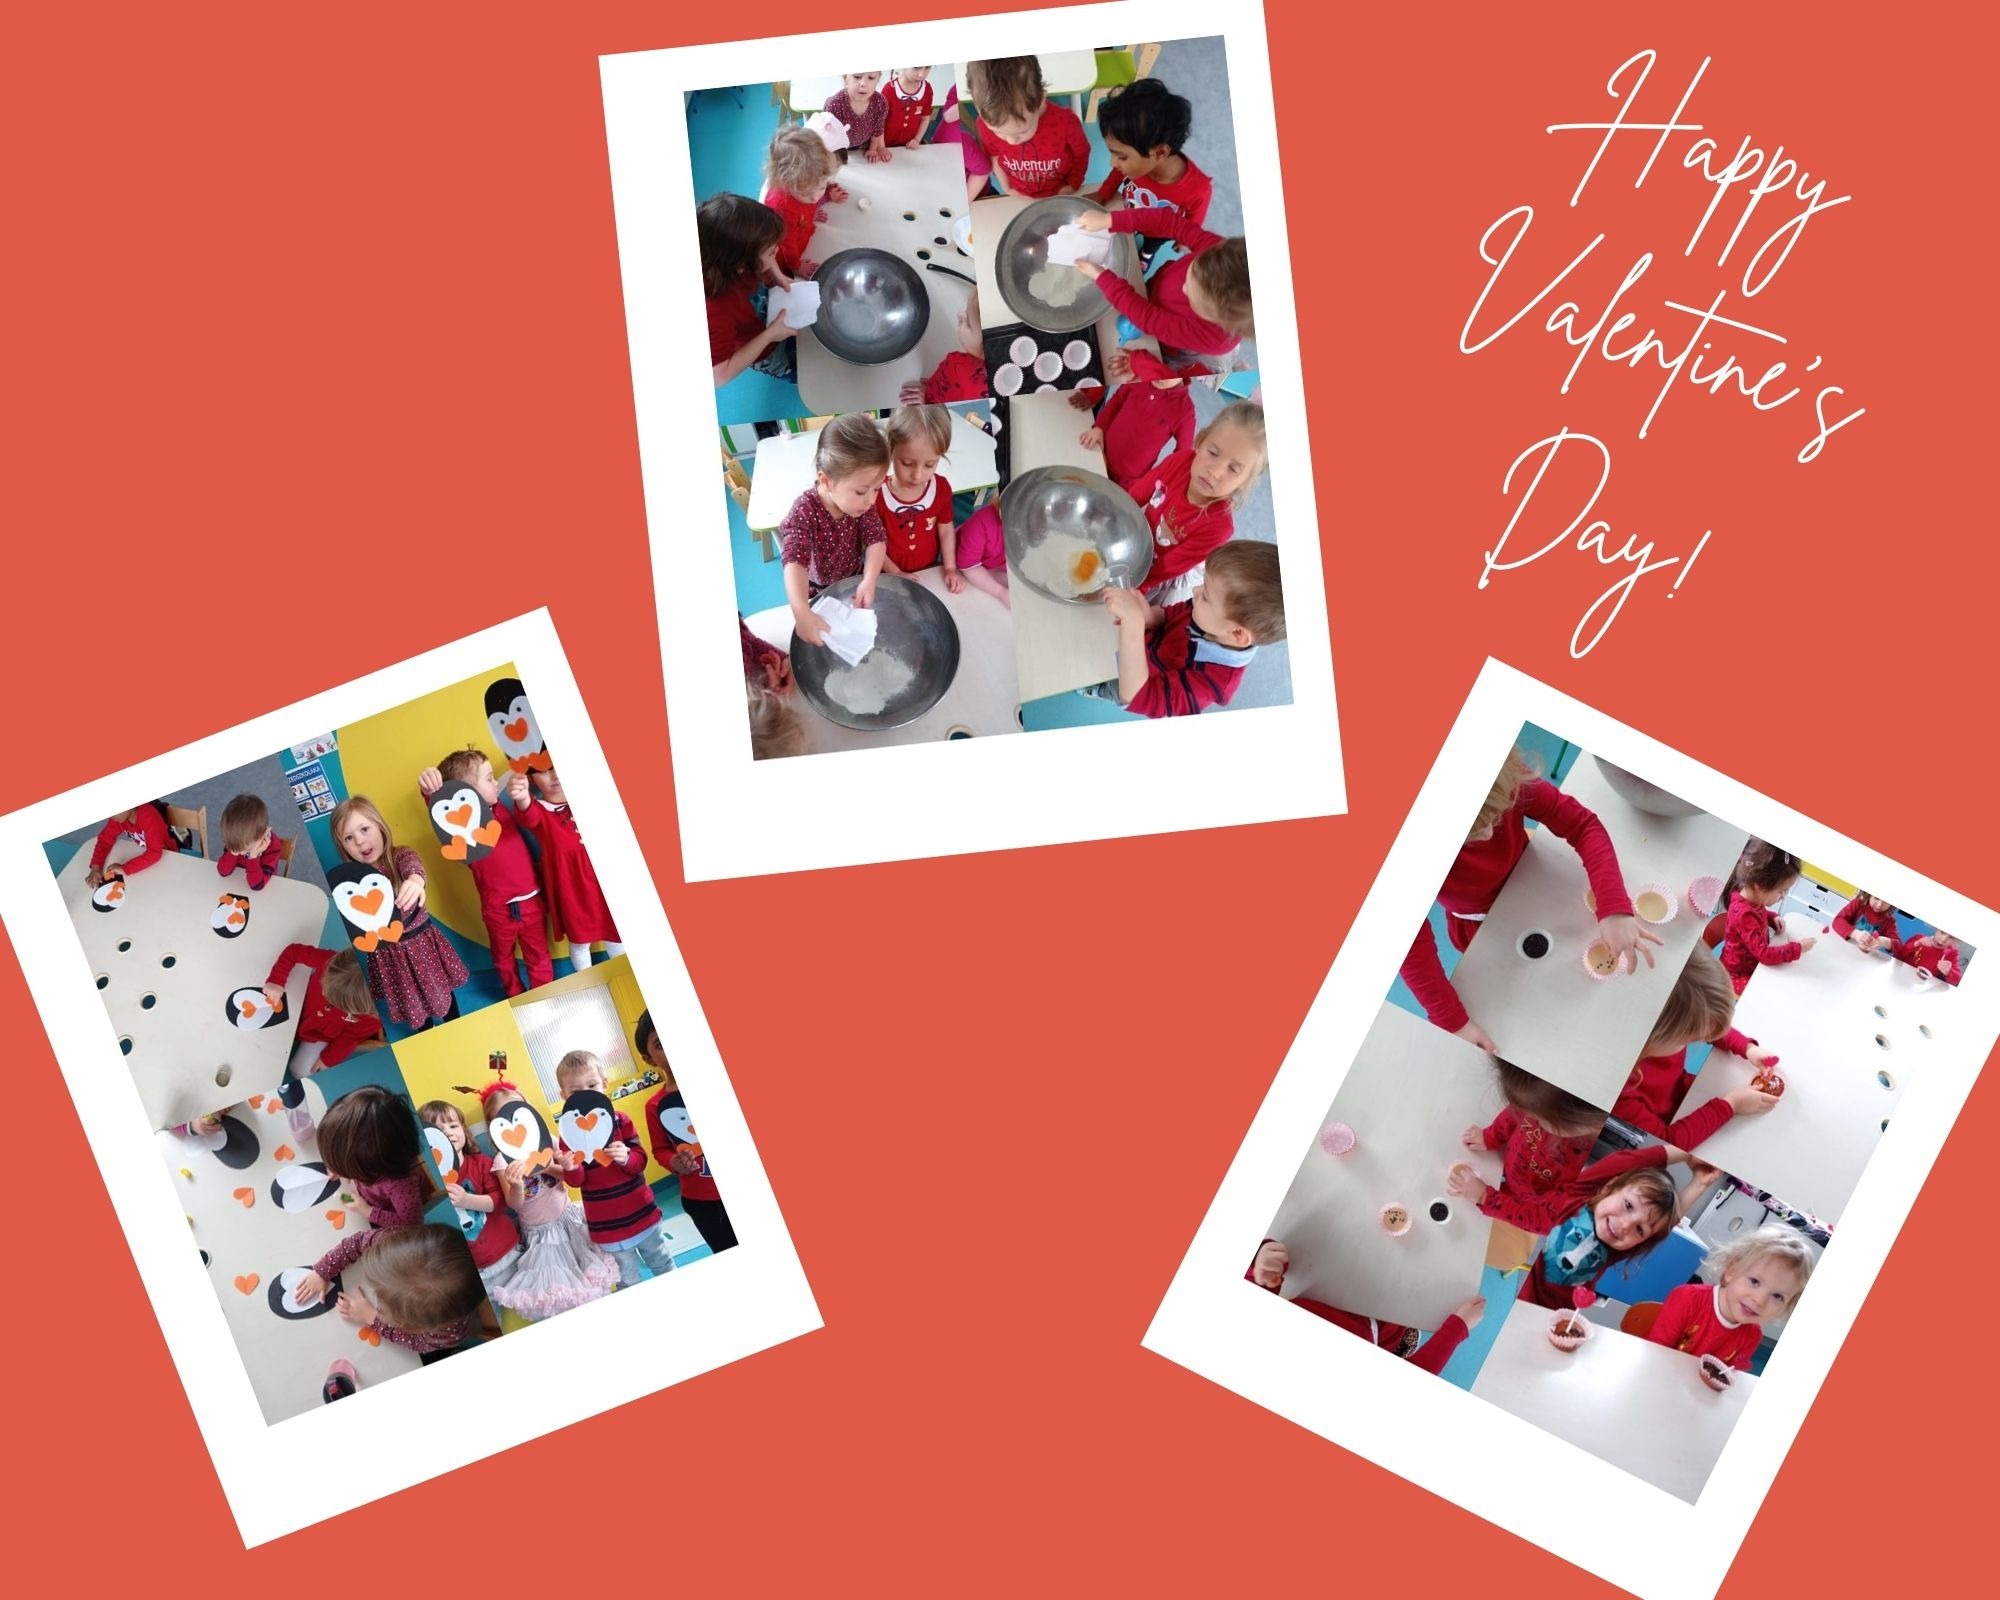 Red_Heart_Monochrome_Photo_Valentines_Day_Photo_Collage2.jpg